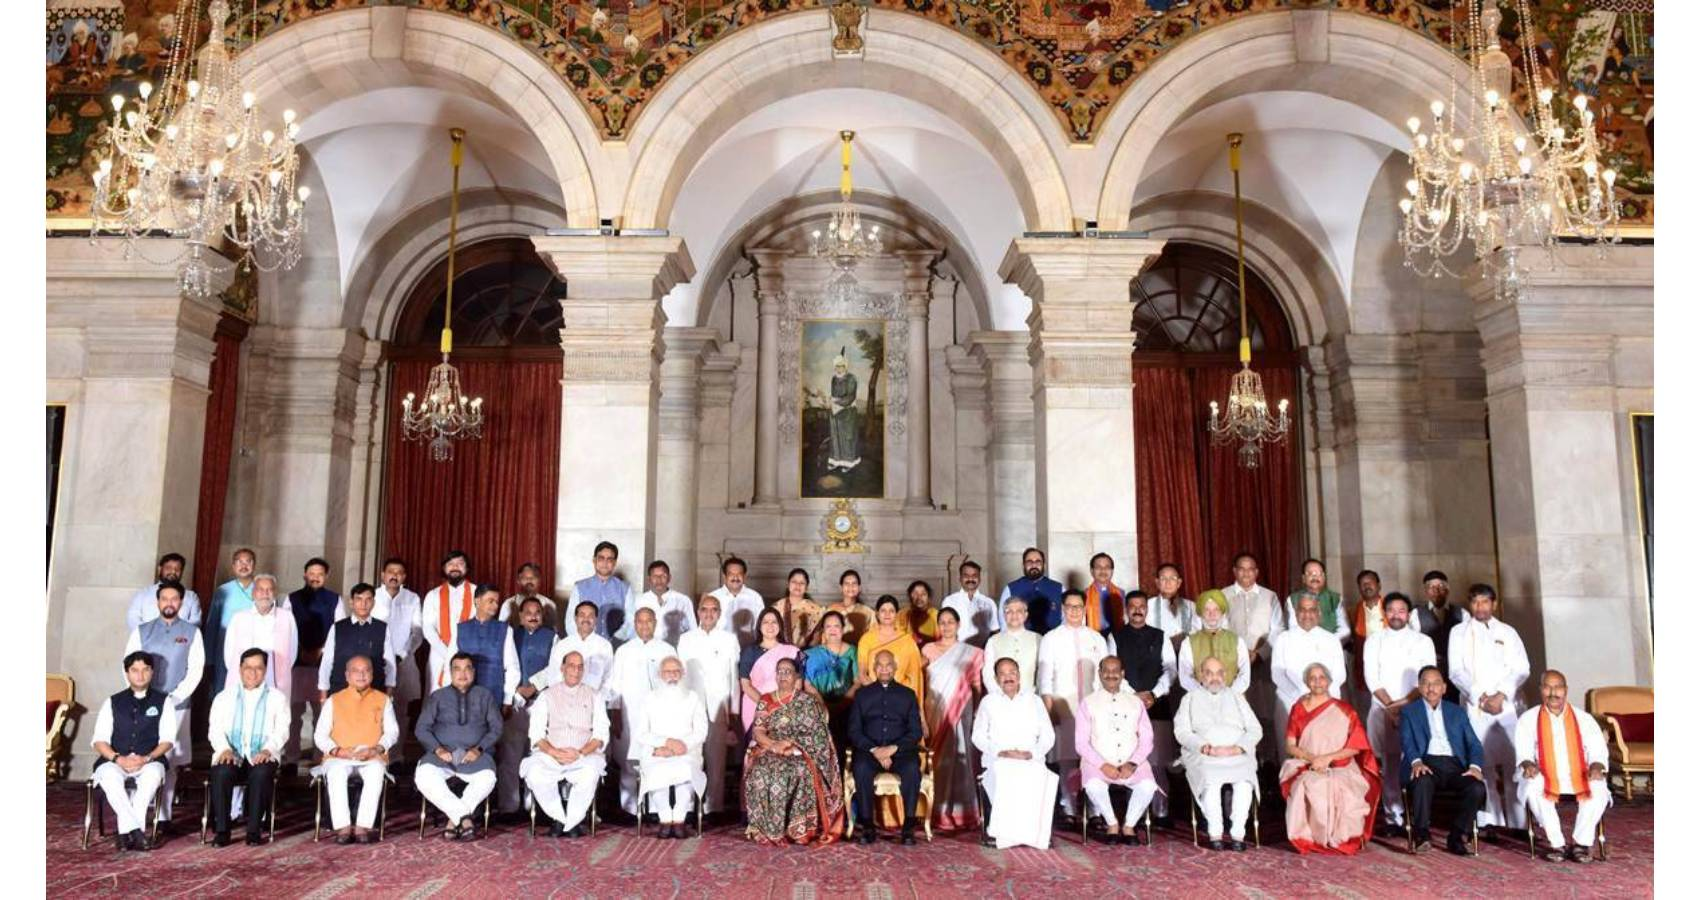 Over 4 In 10 Of Modi's New Council Of Ministers Have Criminal Cases, 90% Are Millionaires